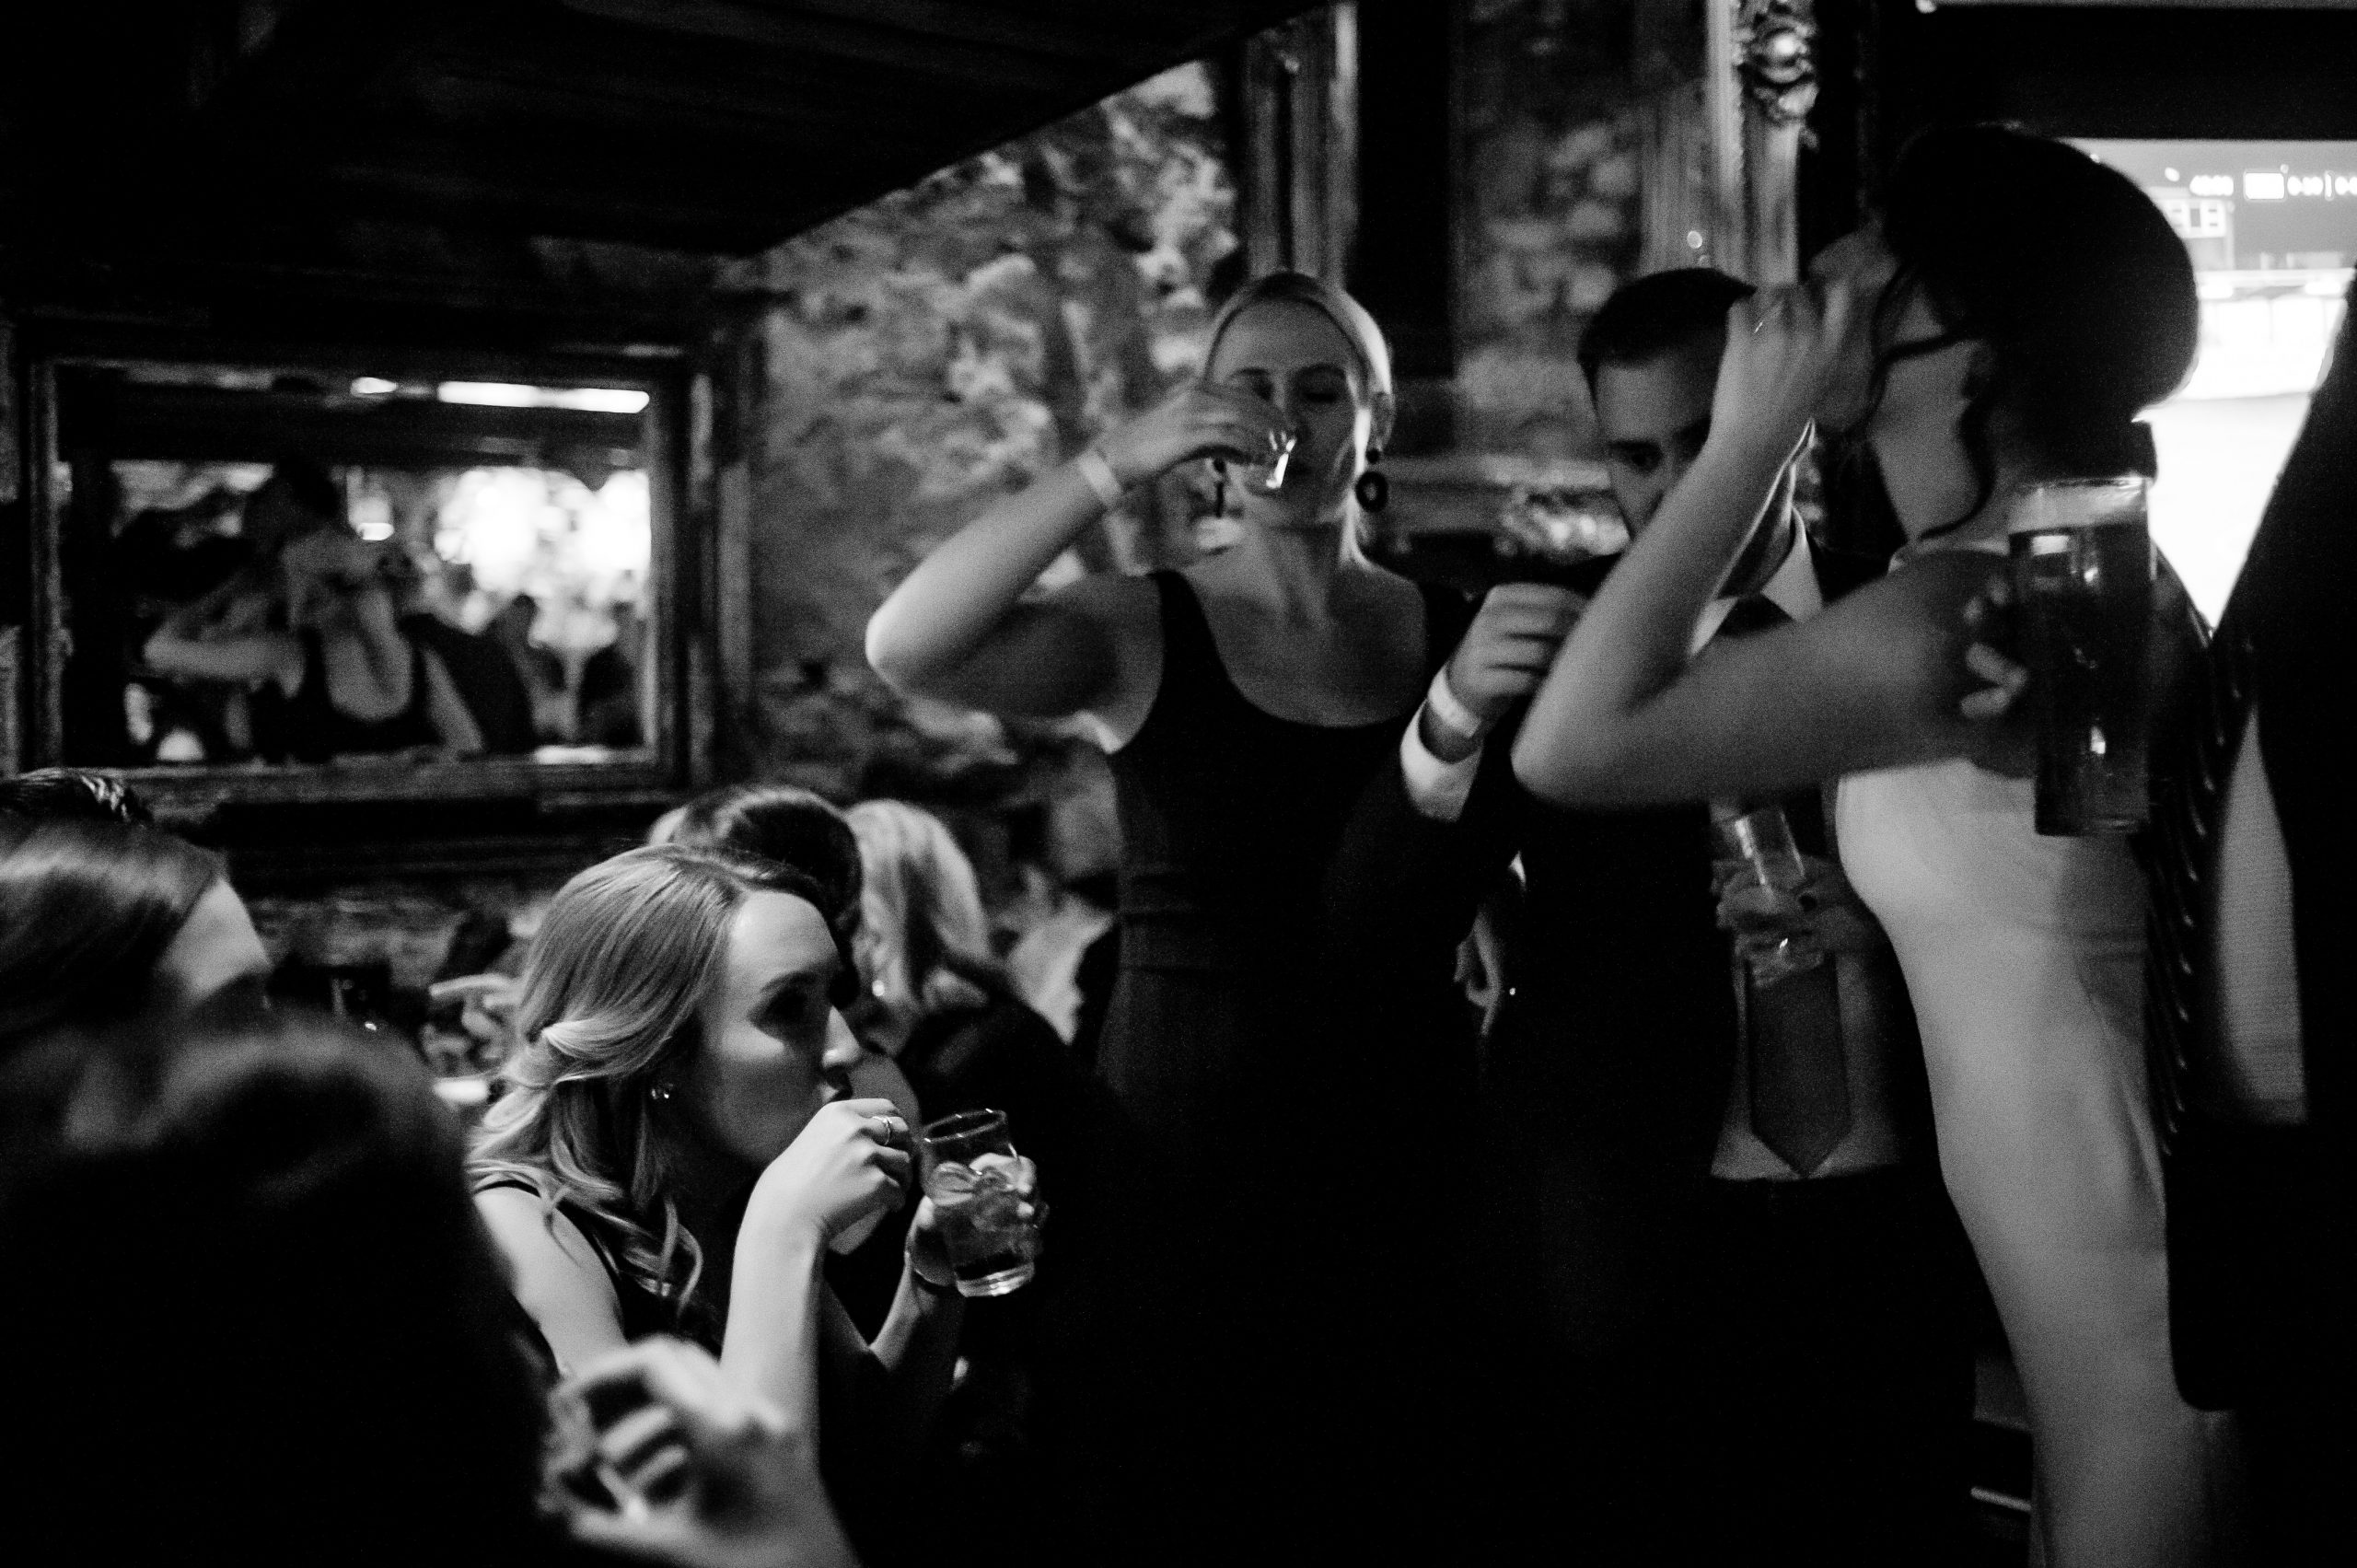 Bride taking a shot with her Bridesmaids